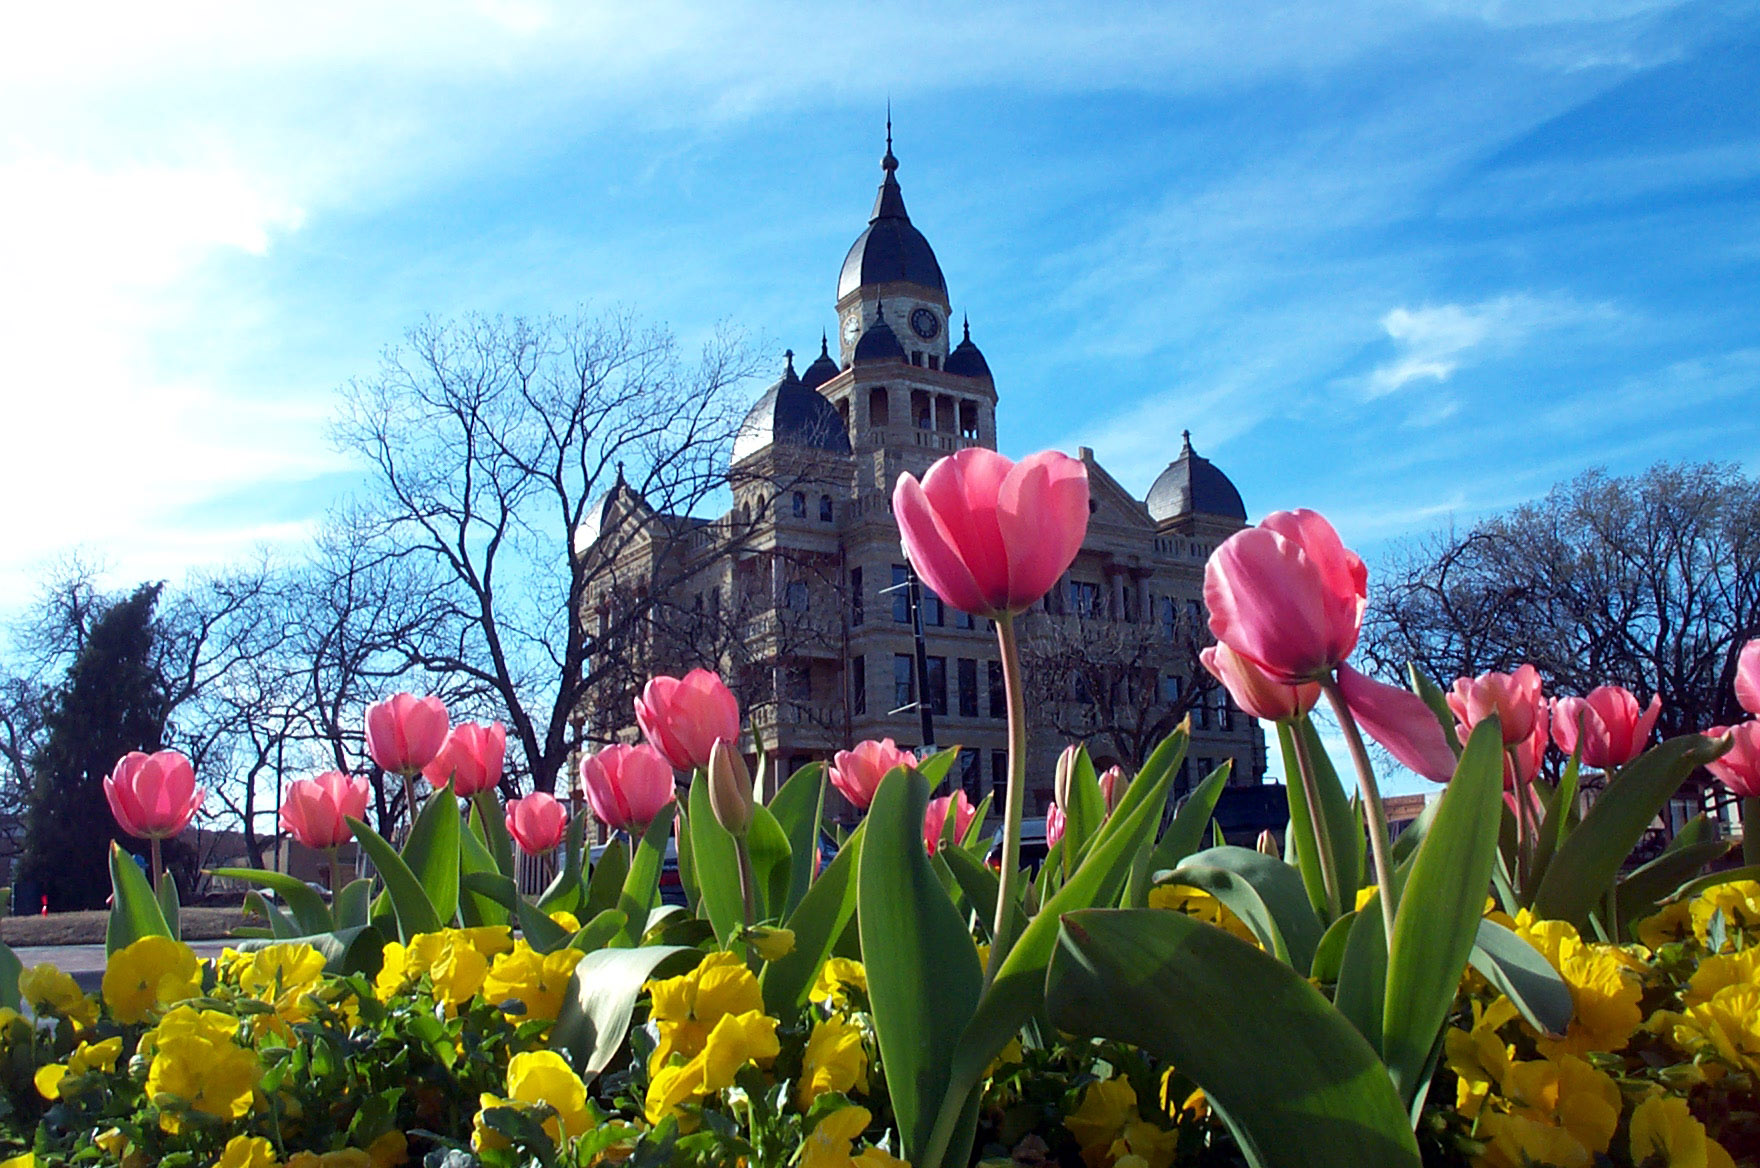 Denton Courthouse Tulips by Christine Gosset